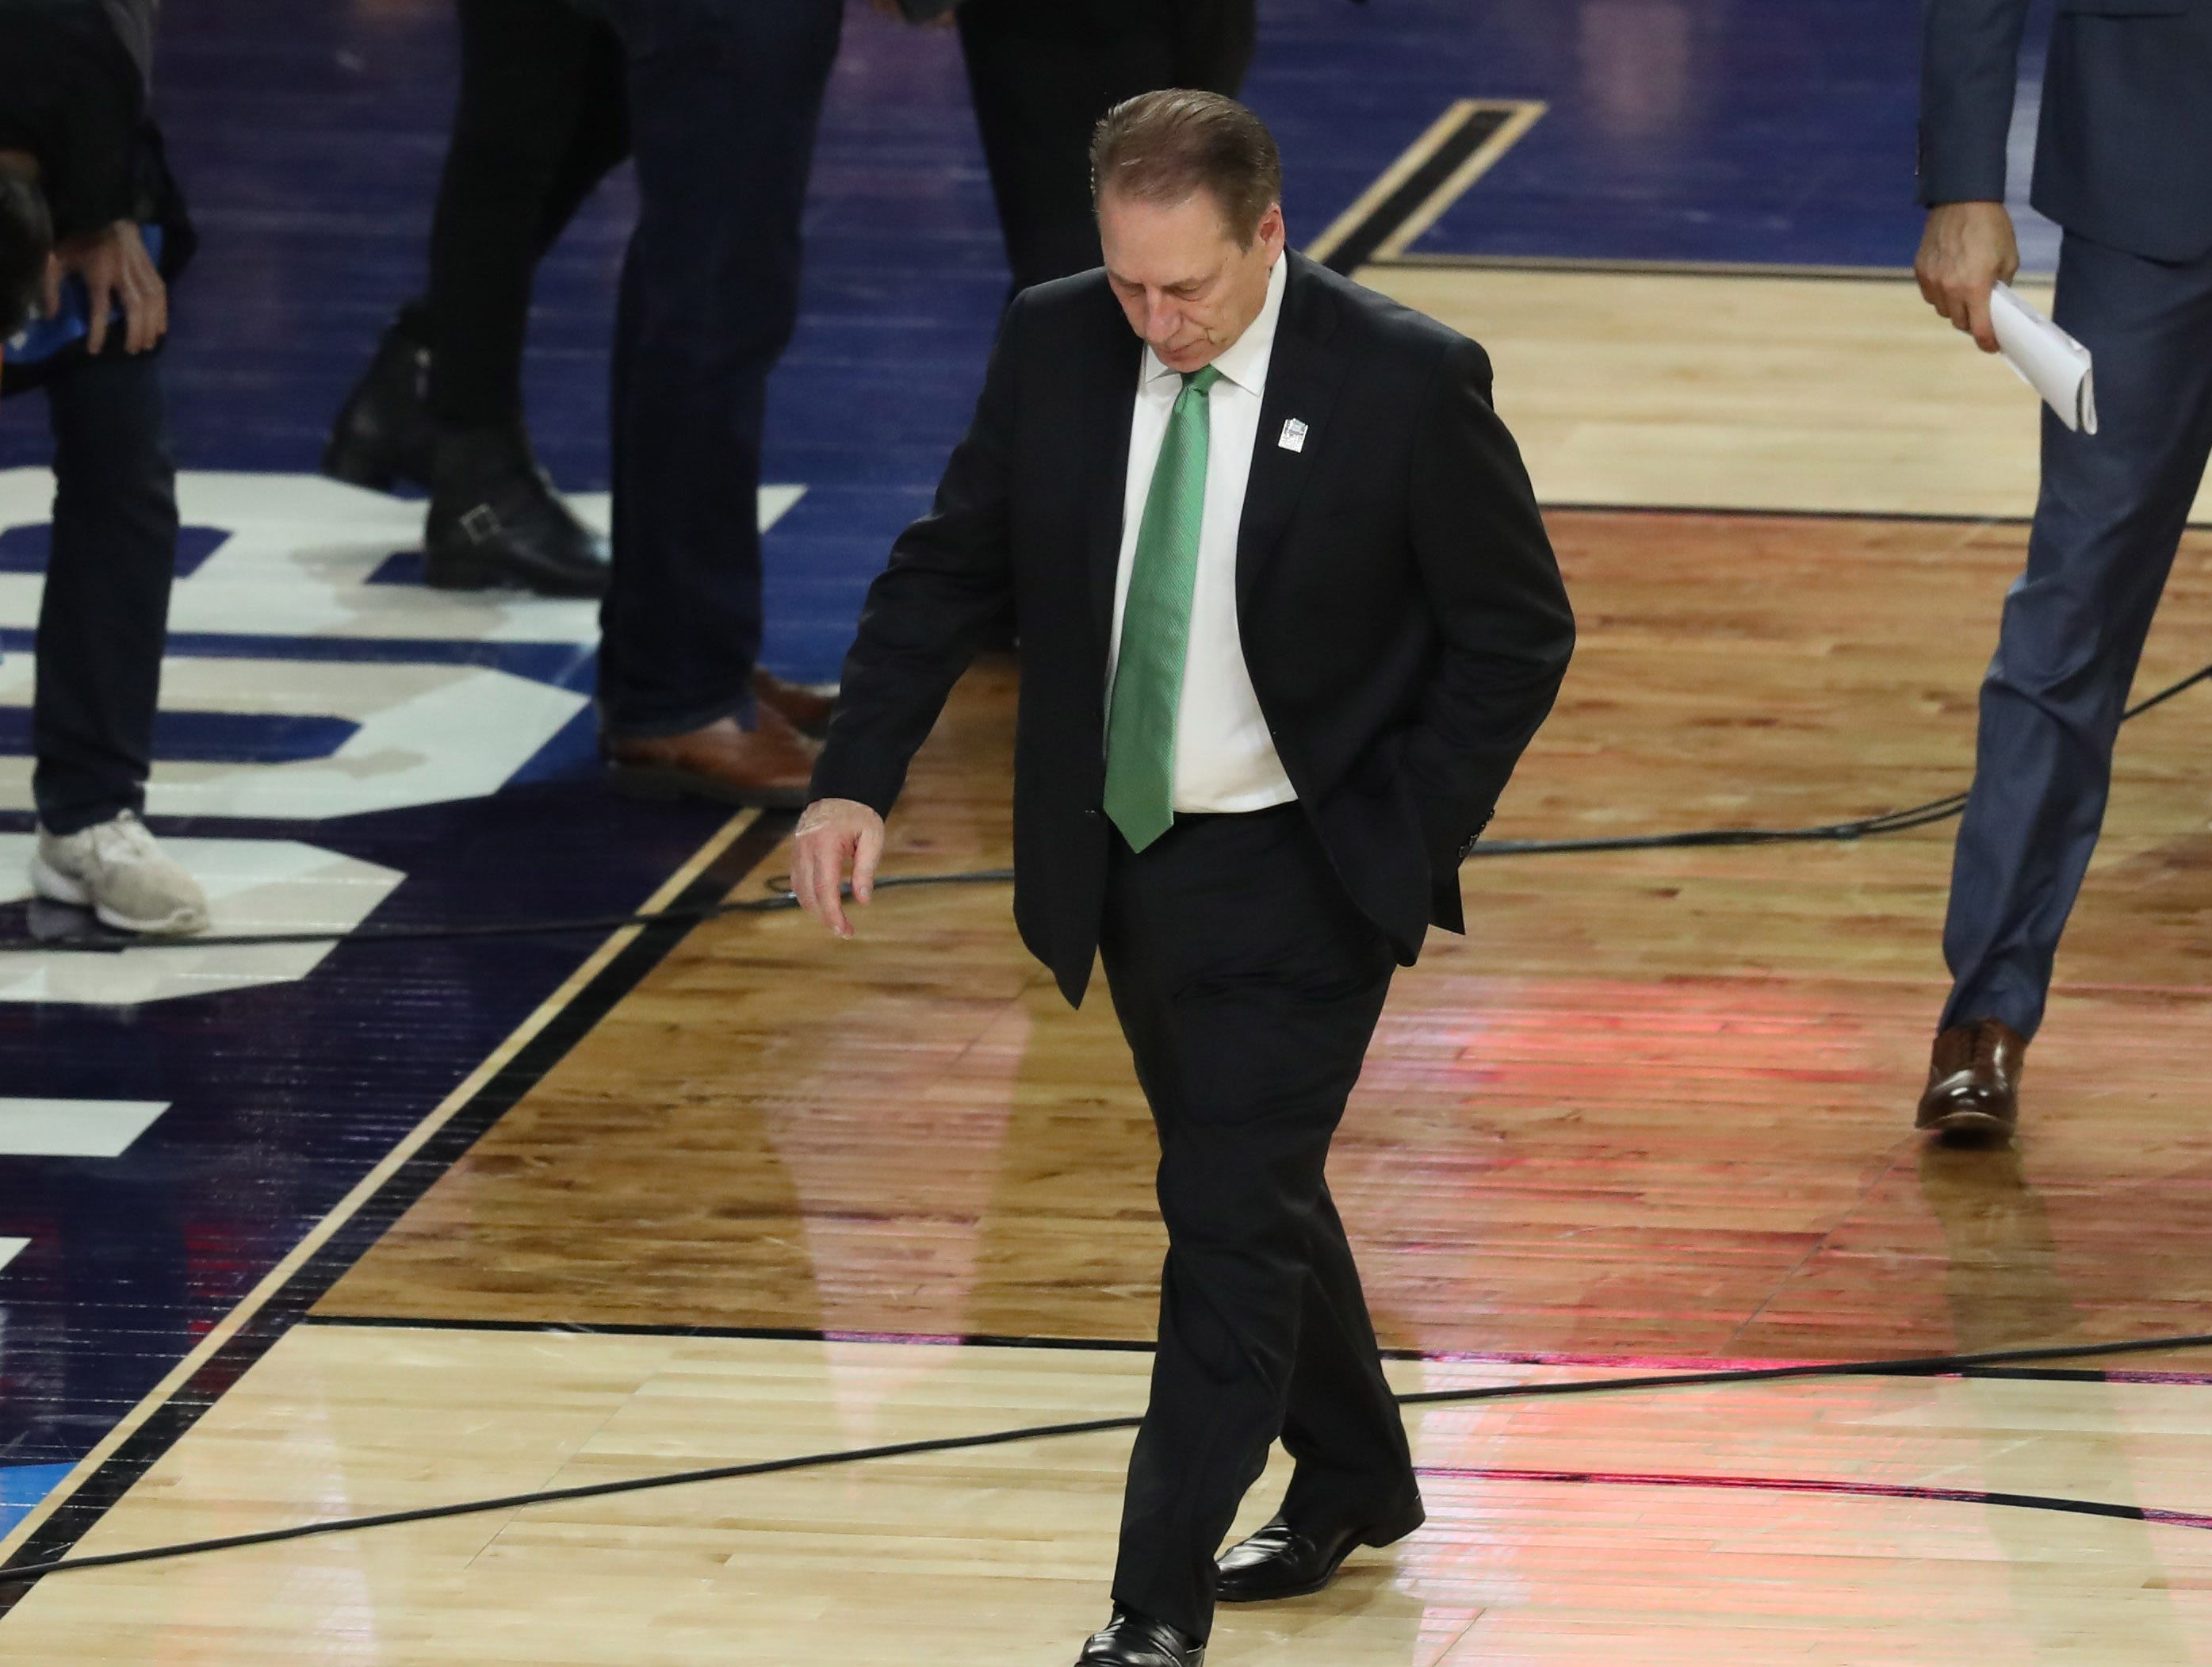 Apr 6, 2019; Minneapolis, MN, USA; Michigan State Spartans head coach Tom Izzo walks off the court after being defeated by Texas Tech Red Raiders in the semifinals of the 2019 men's Final Four at US Bank Stadium. Mandatory Credit: Brace Hemmelgarn-USA TODAY Sports